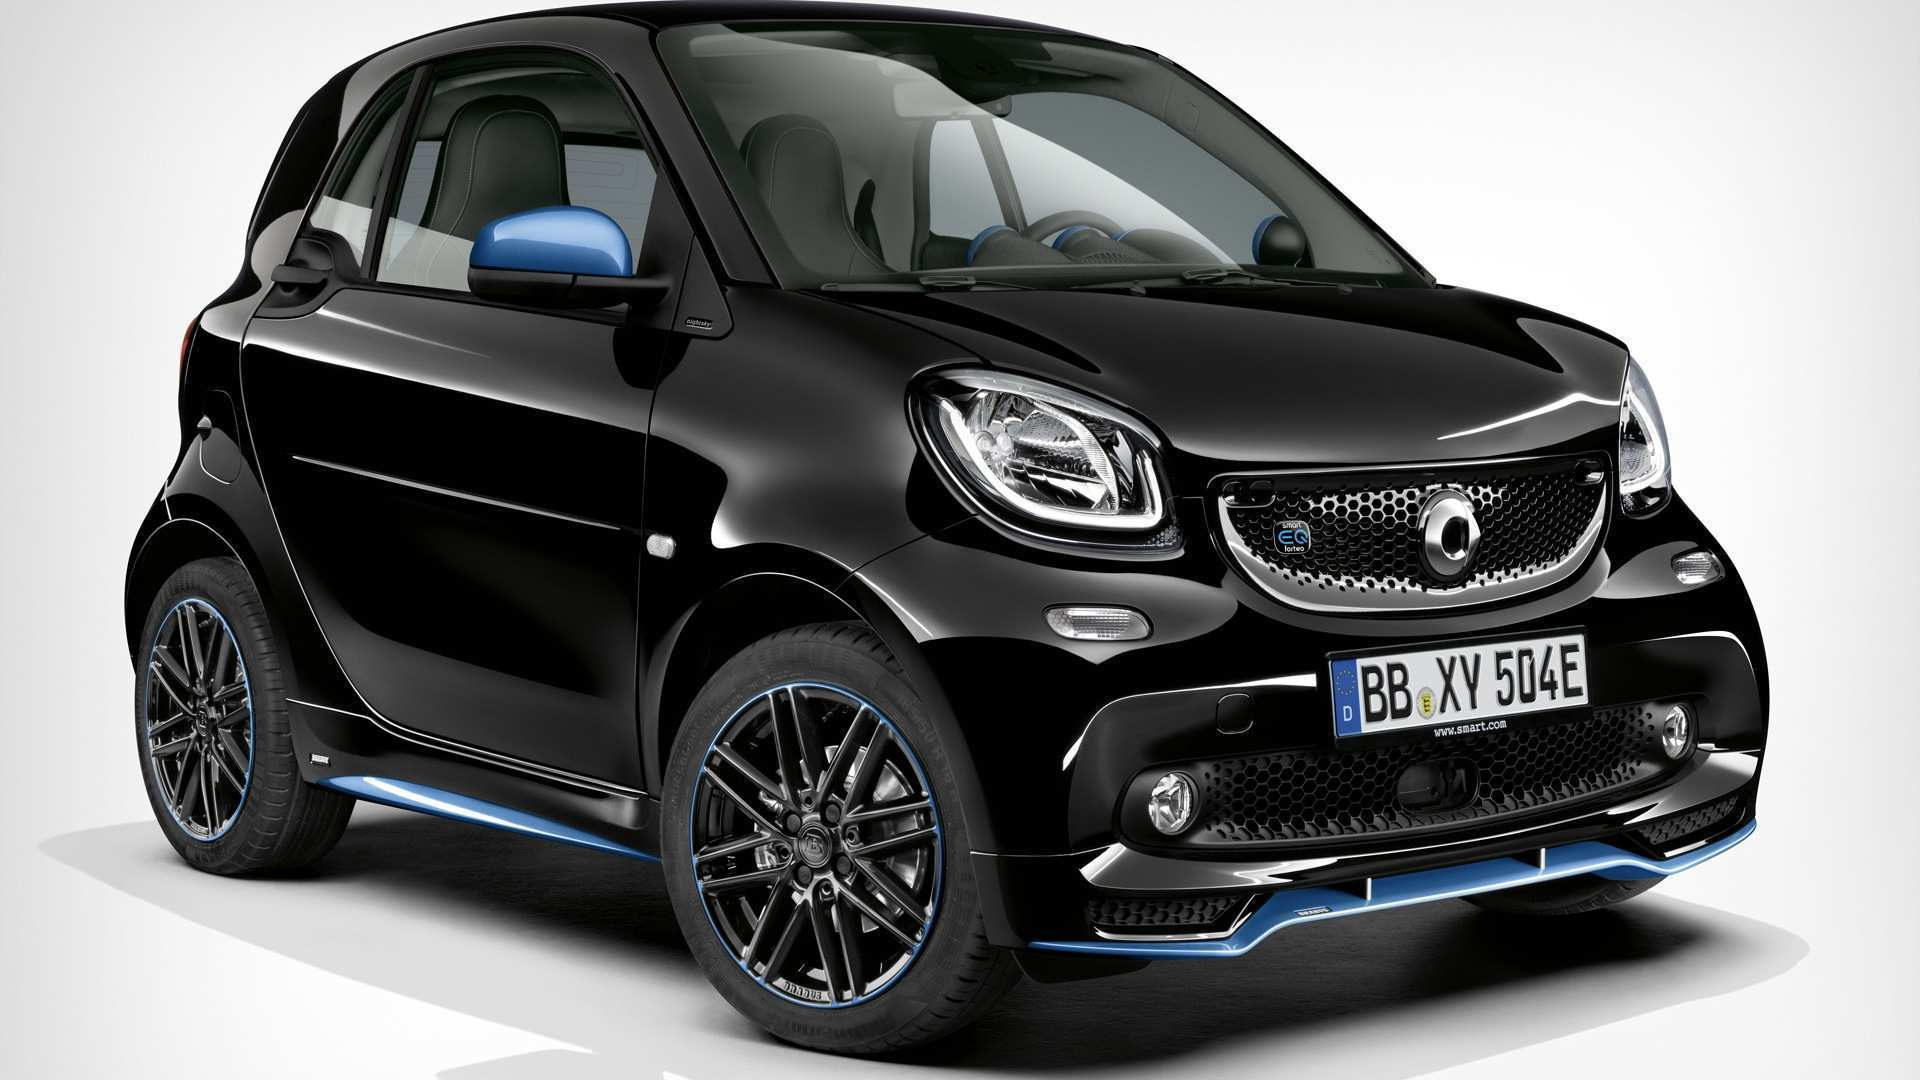 84 All New 2019 Smart Fortwo Images